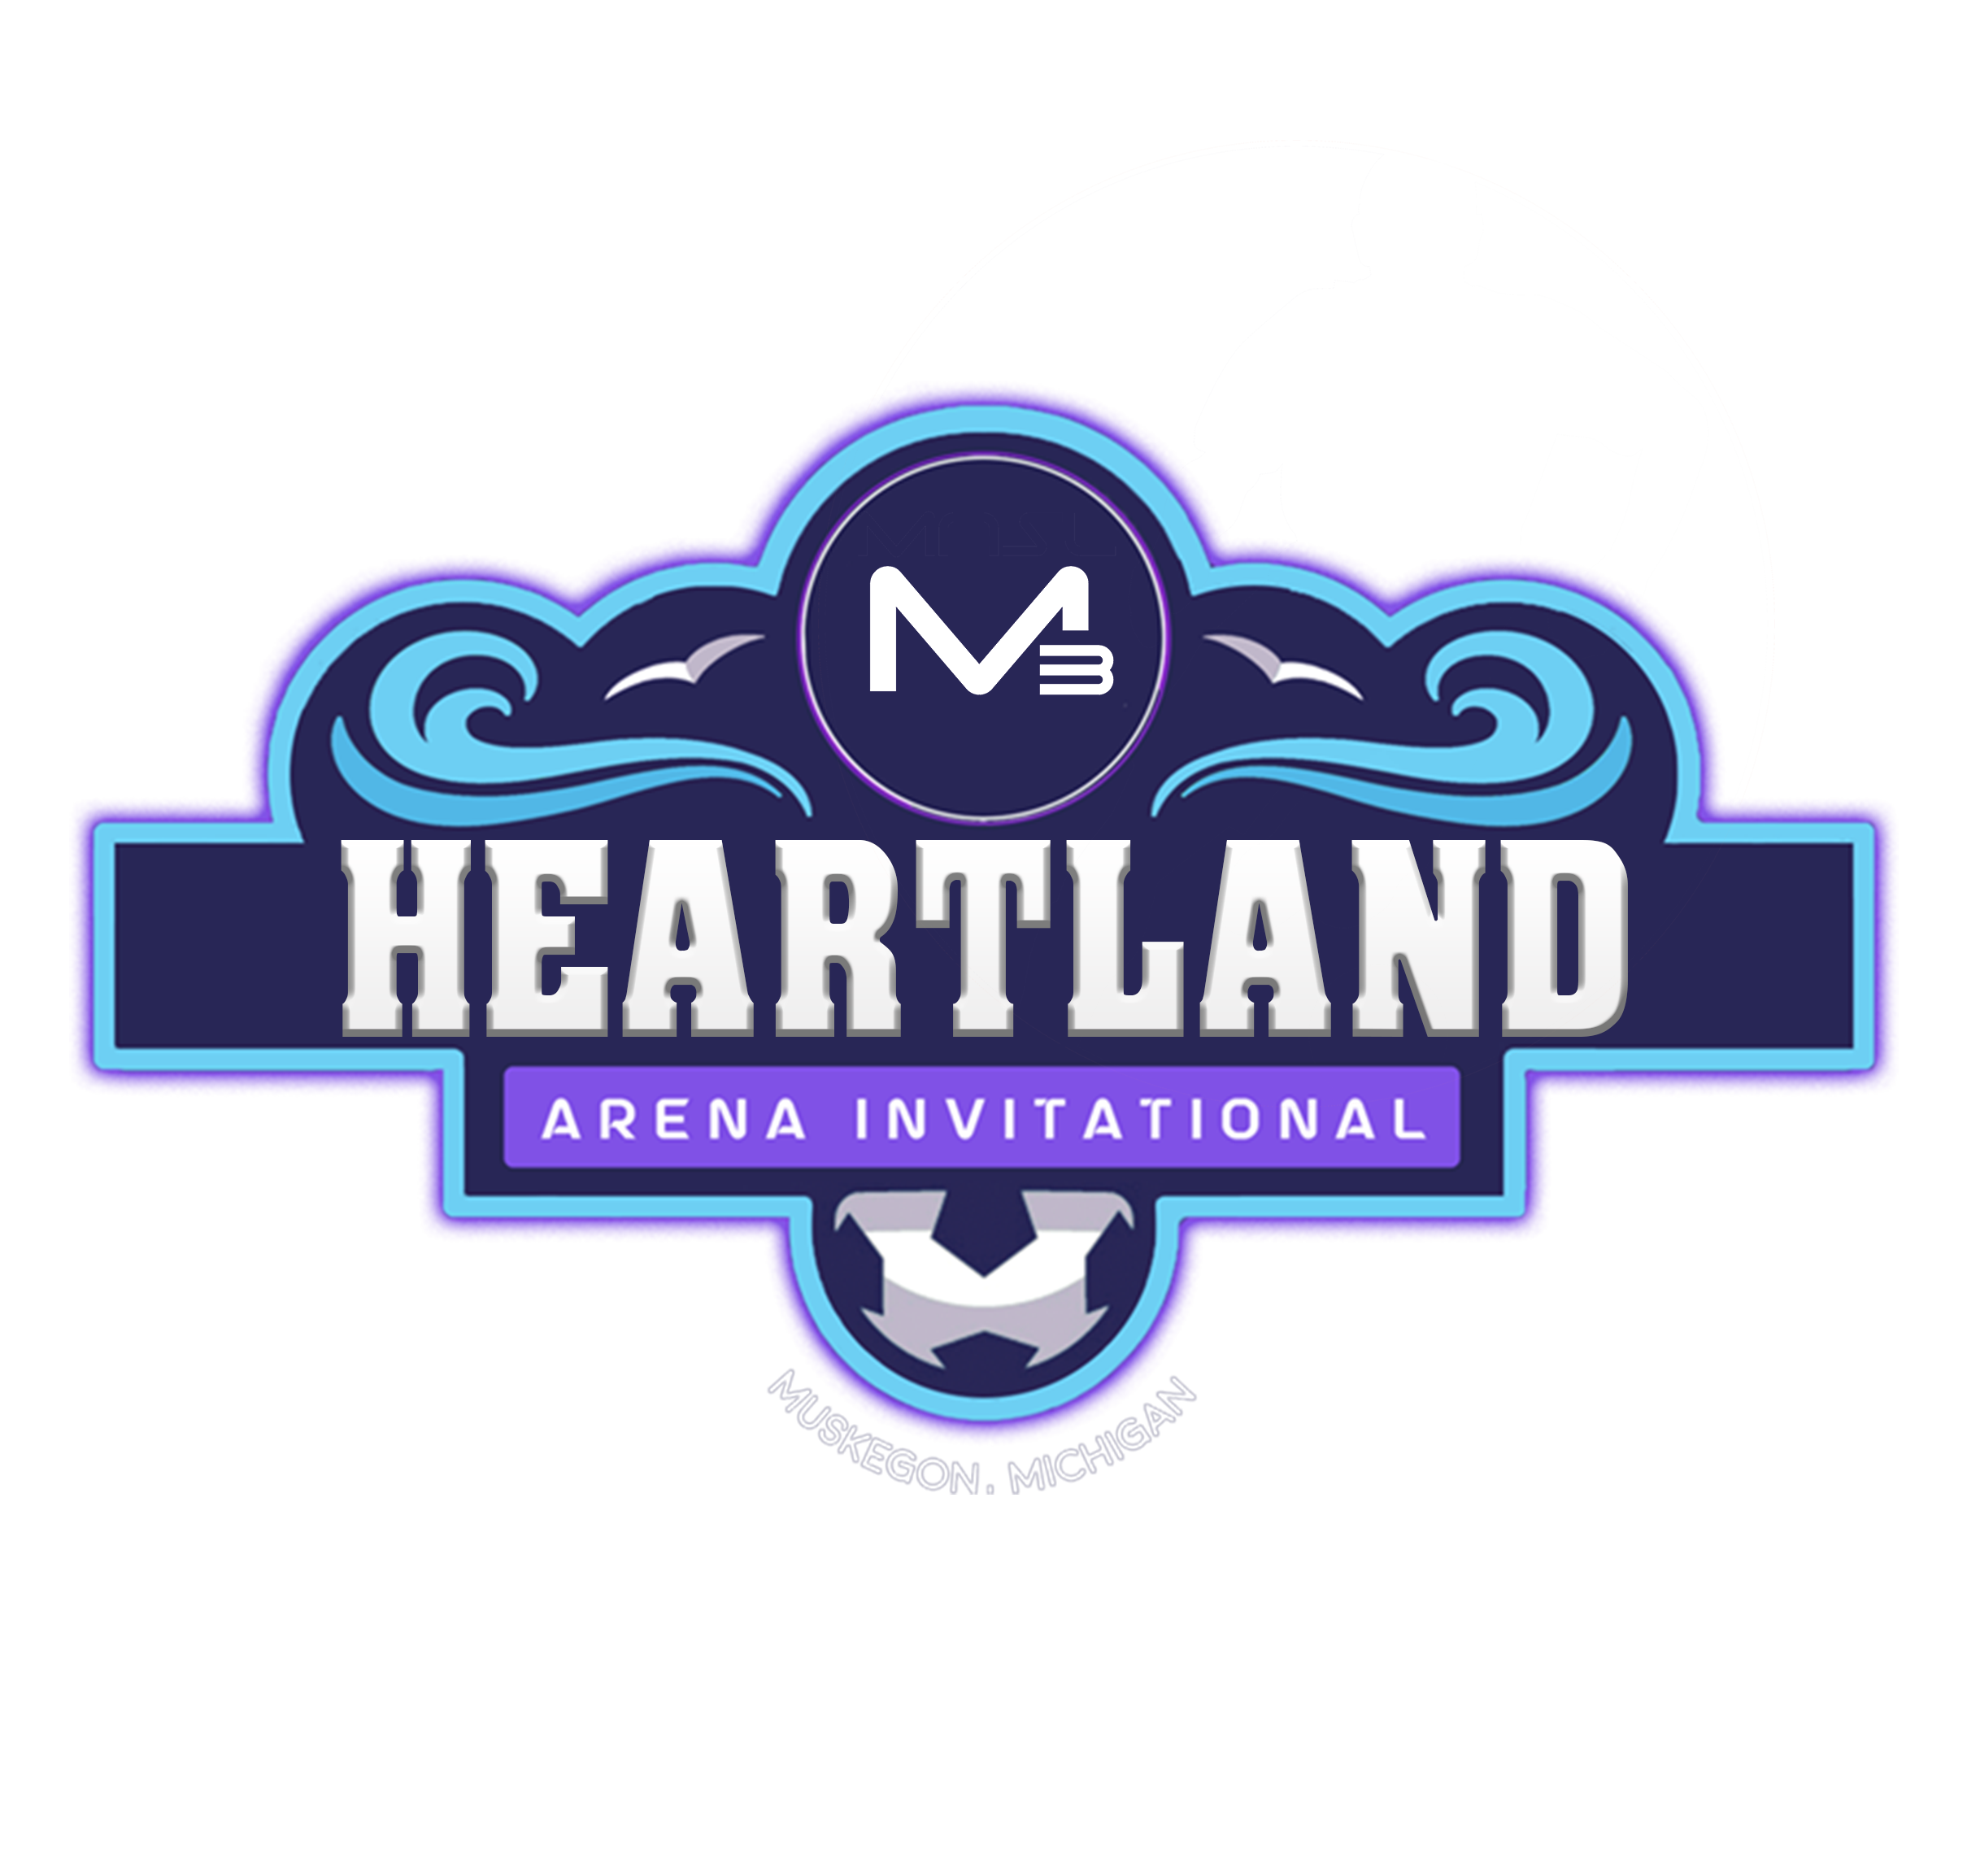 Demize win 8 - 4 in the first round of the M3's Heartland Arena Invitational